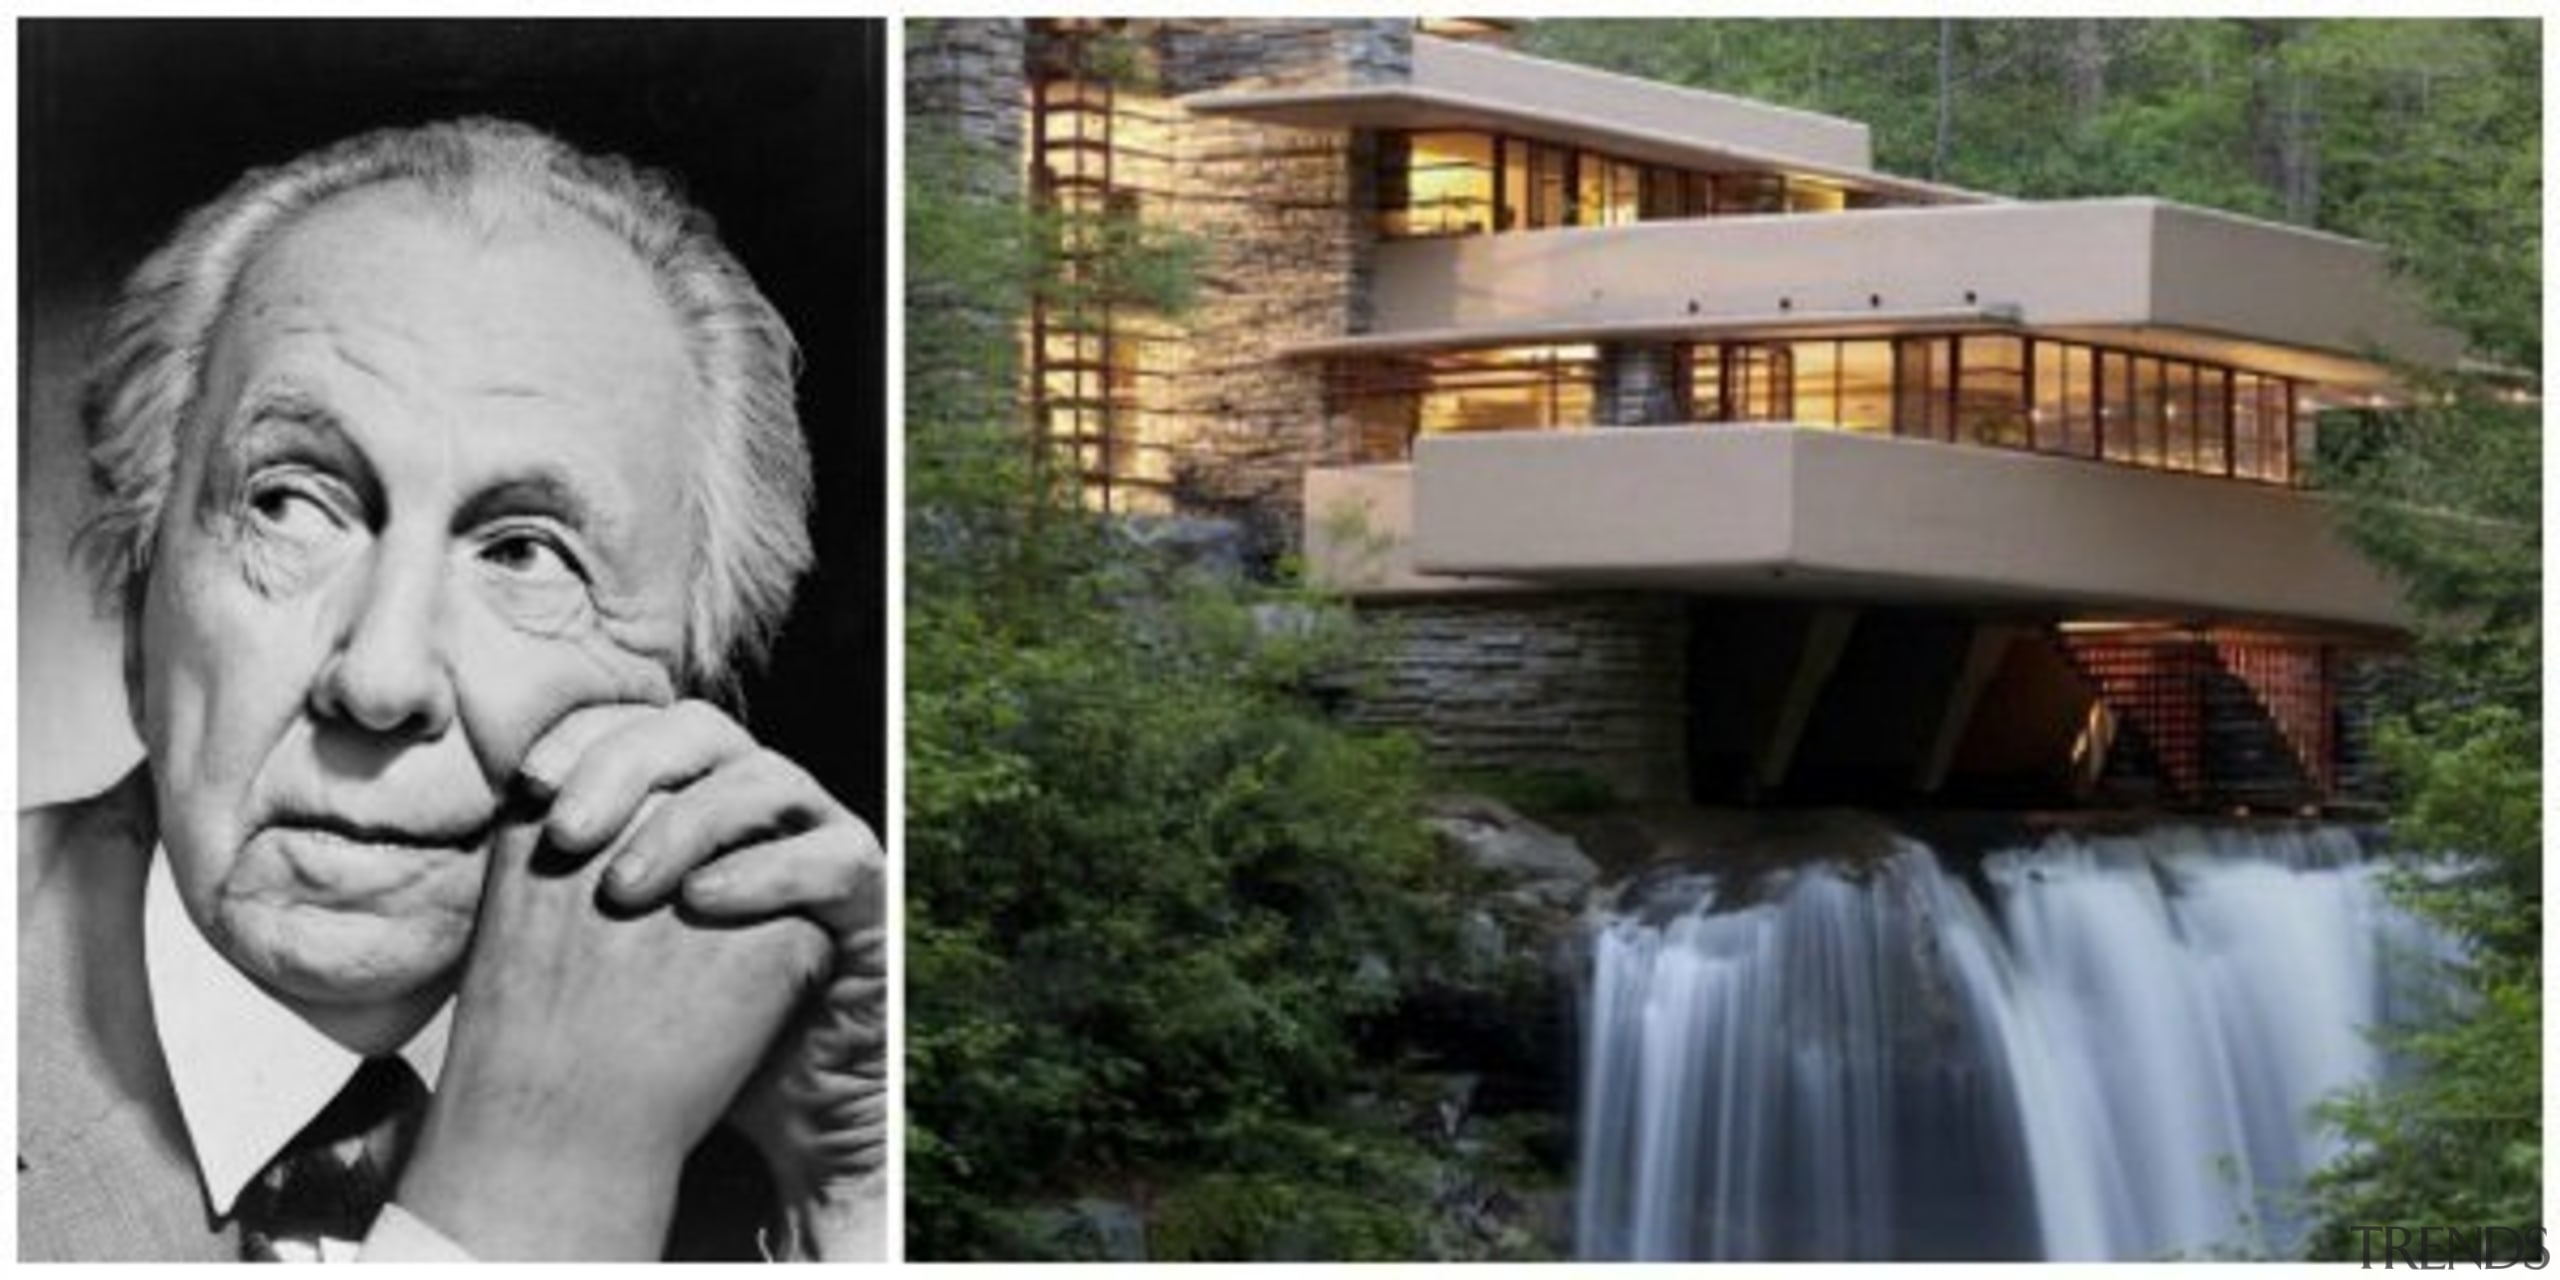 Frank Lloyd Wright and his famous Fallingwater - home, water, gray